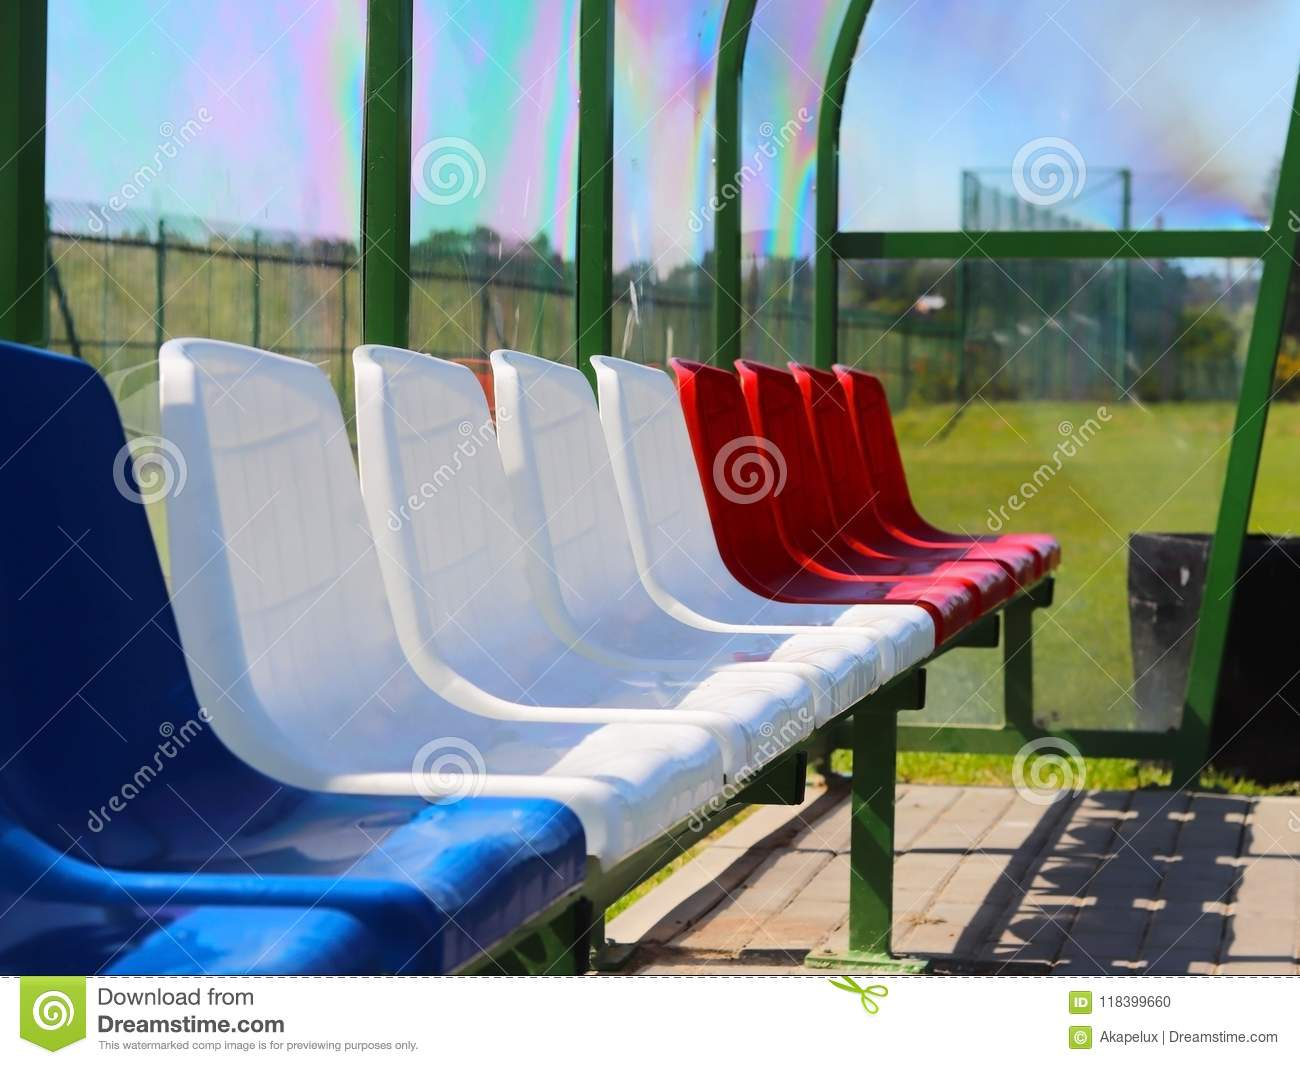 Places for coaches and reserve players on the football field. Plastic colored benches under a canopy of transparent fiberglass. Re